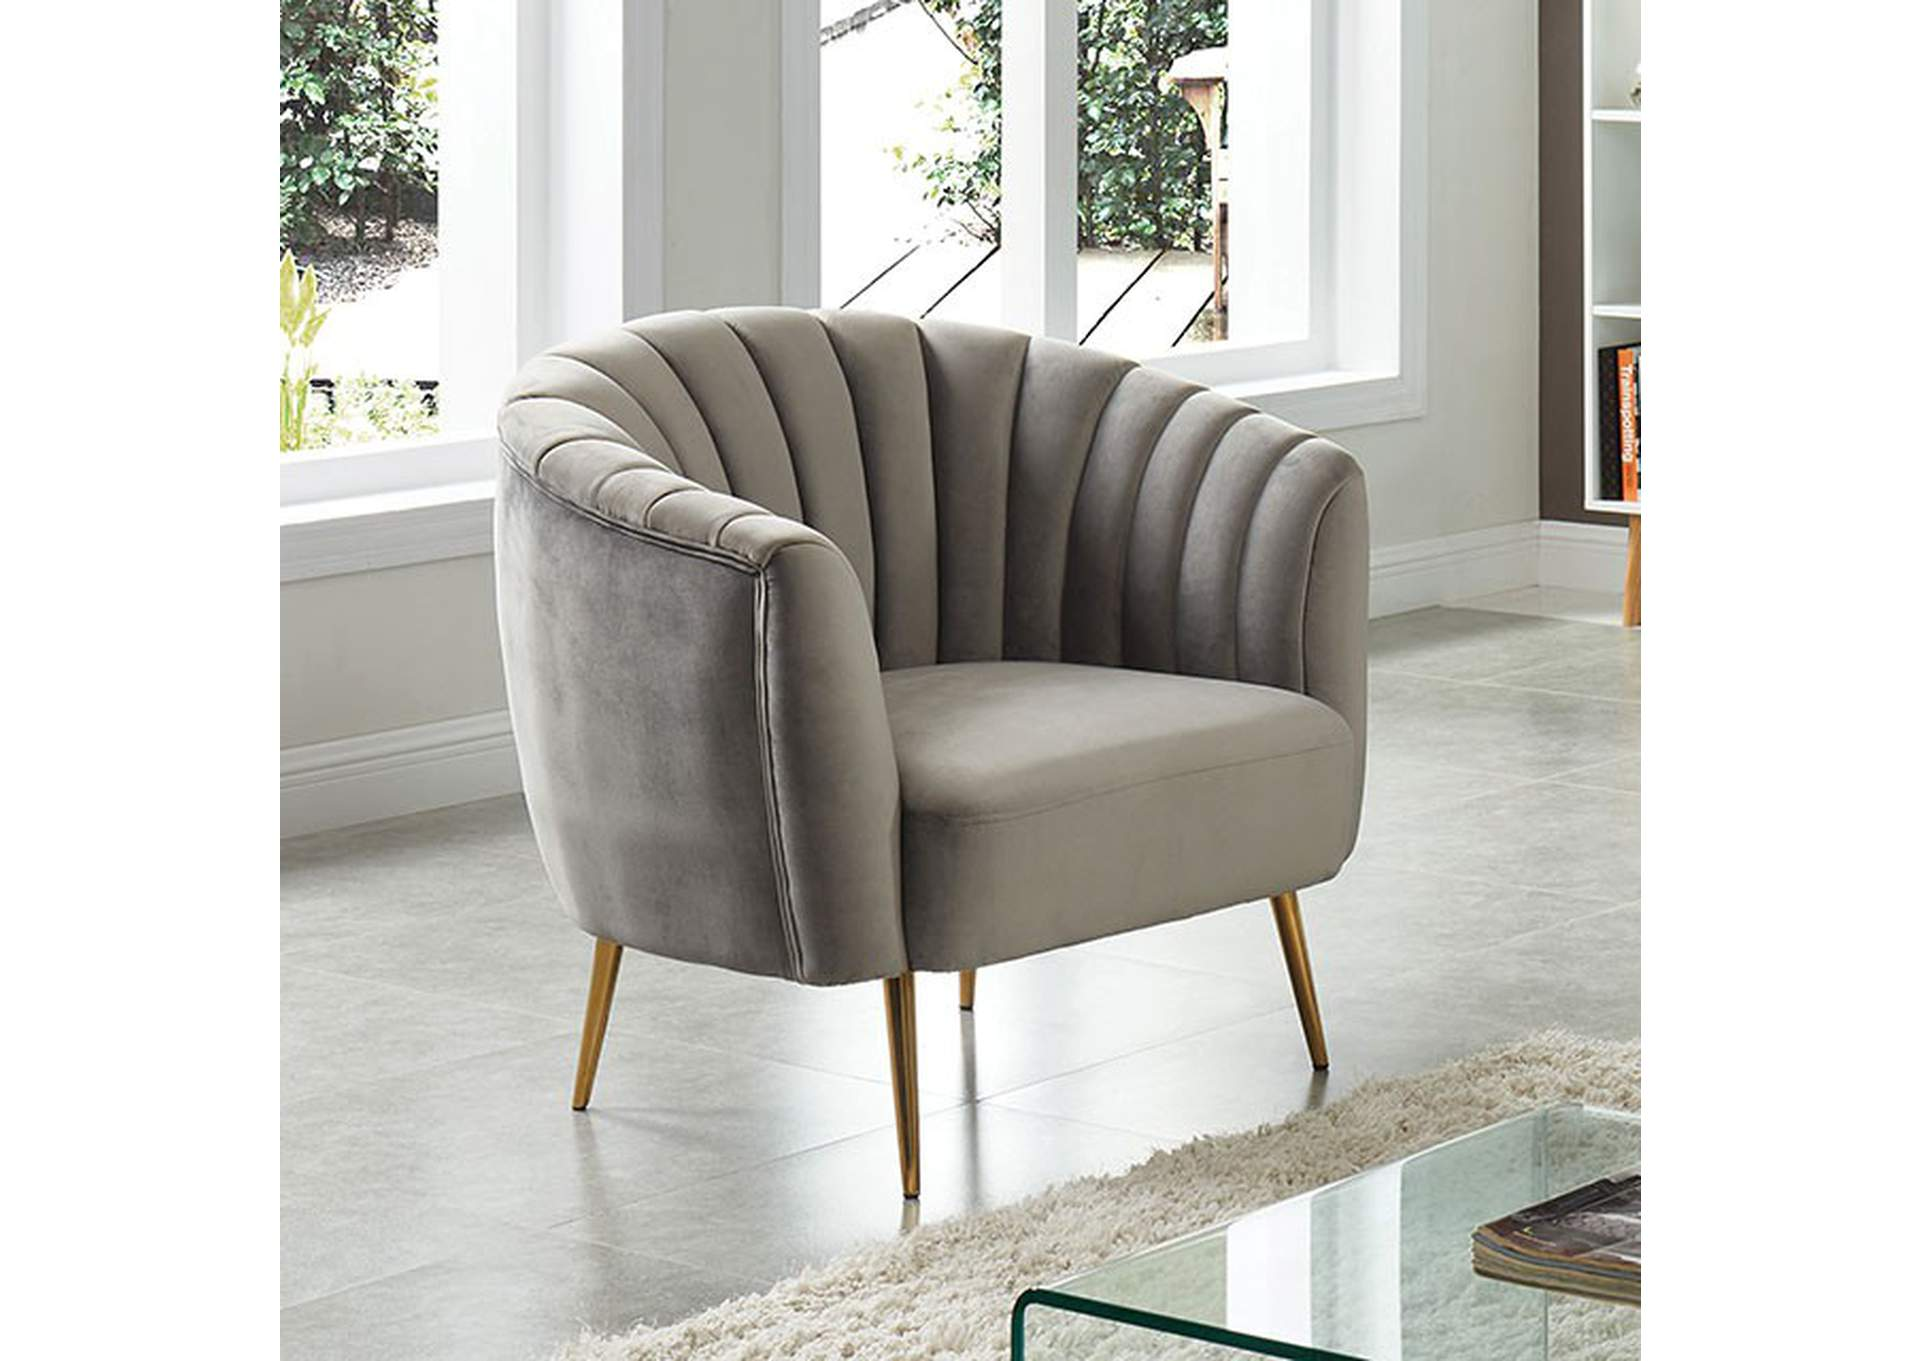 Dionne Gray Chair,Furniture of America